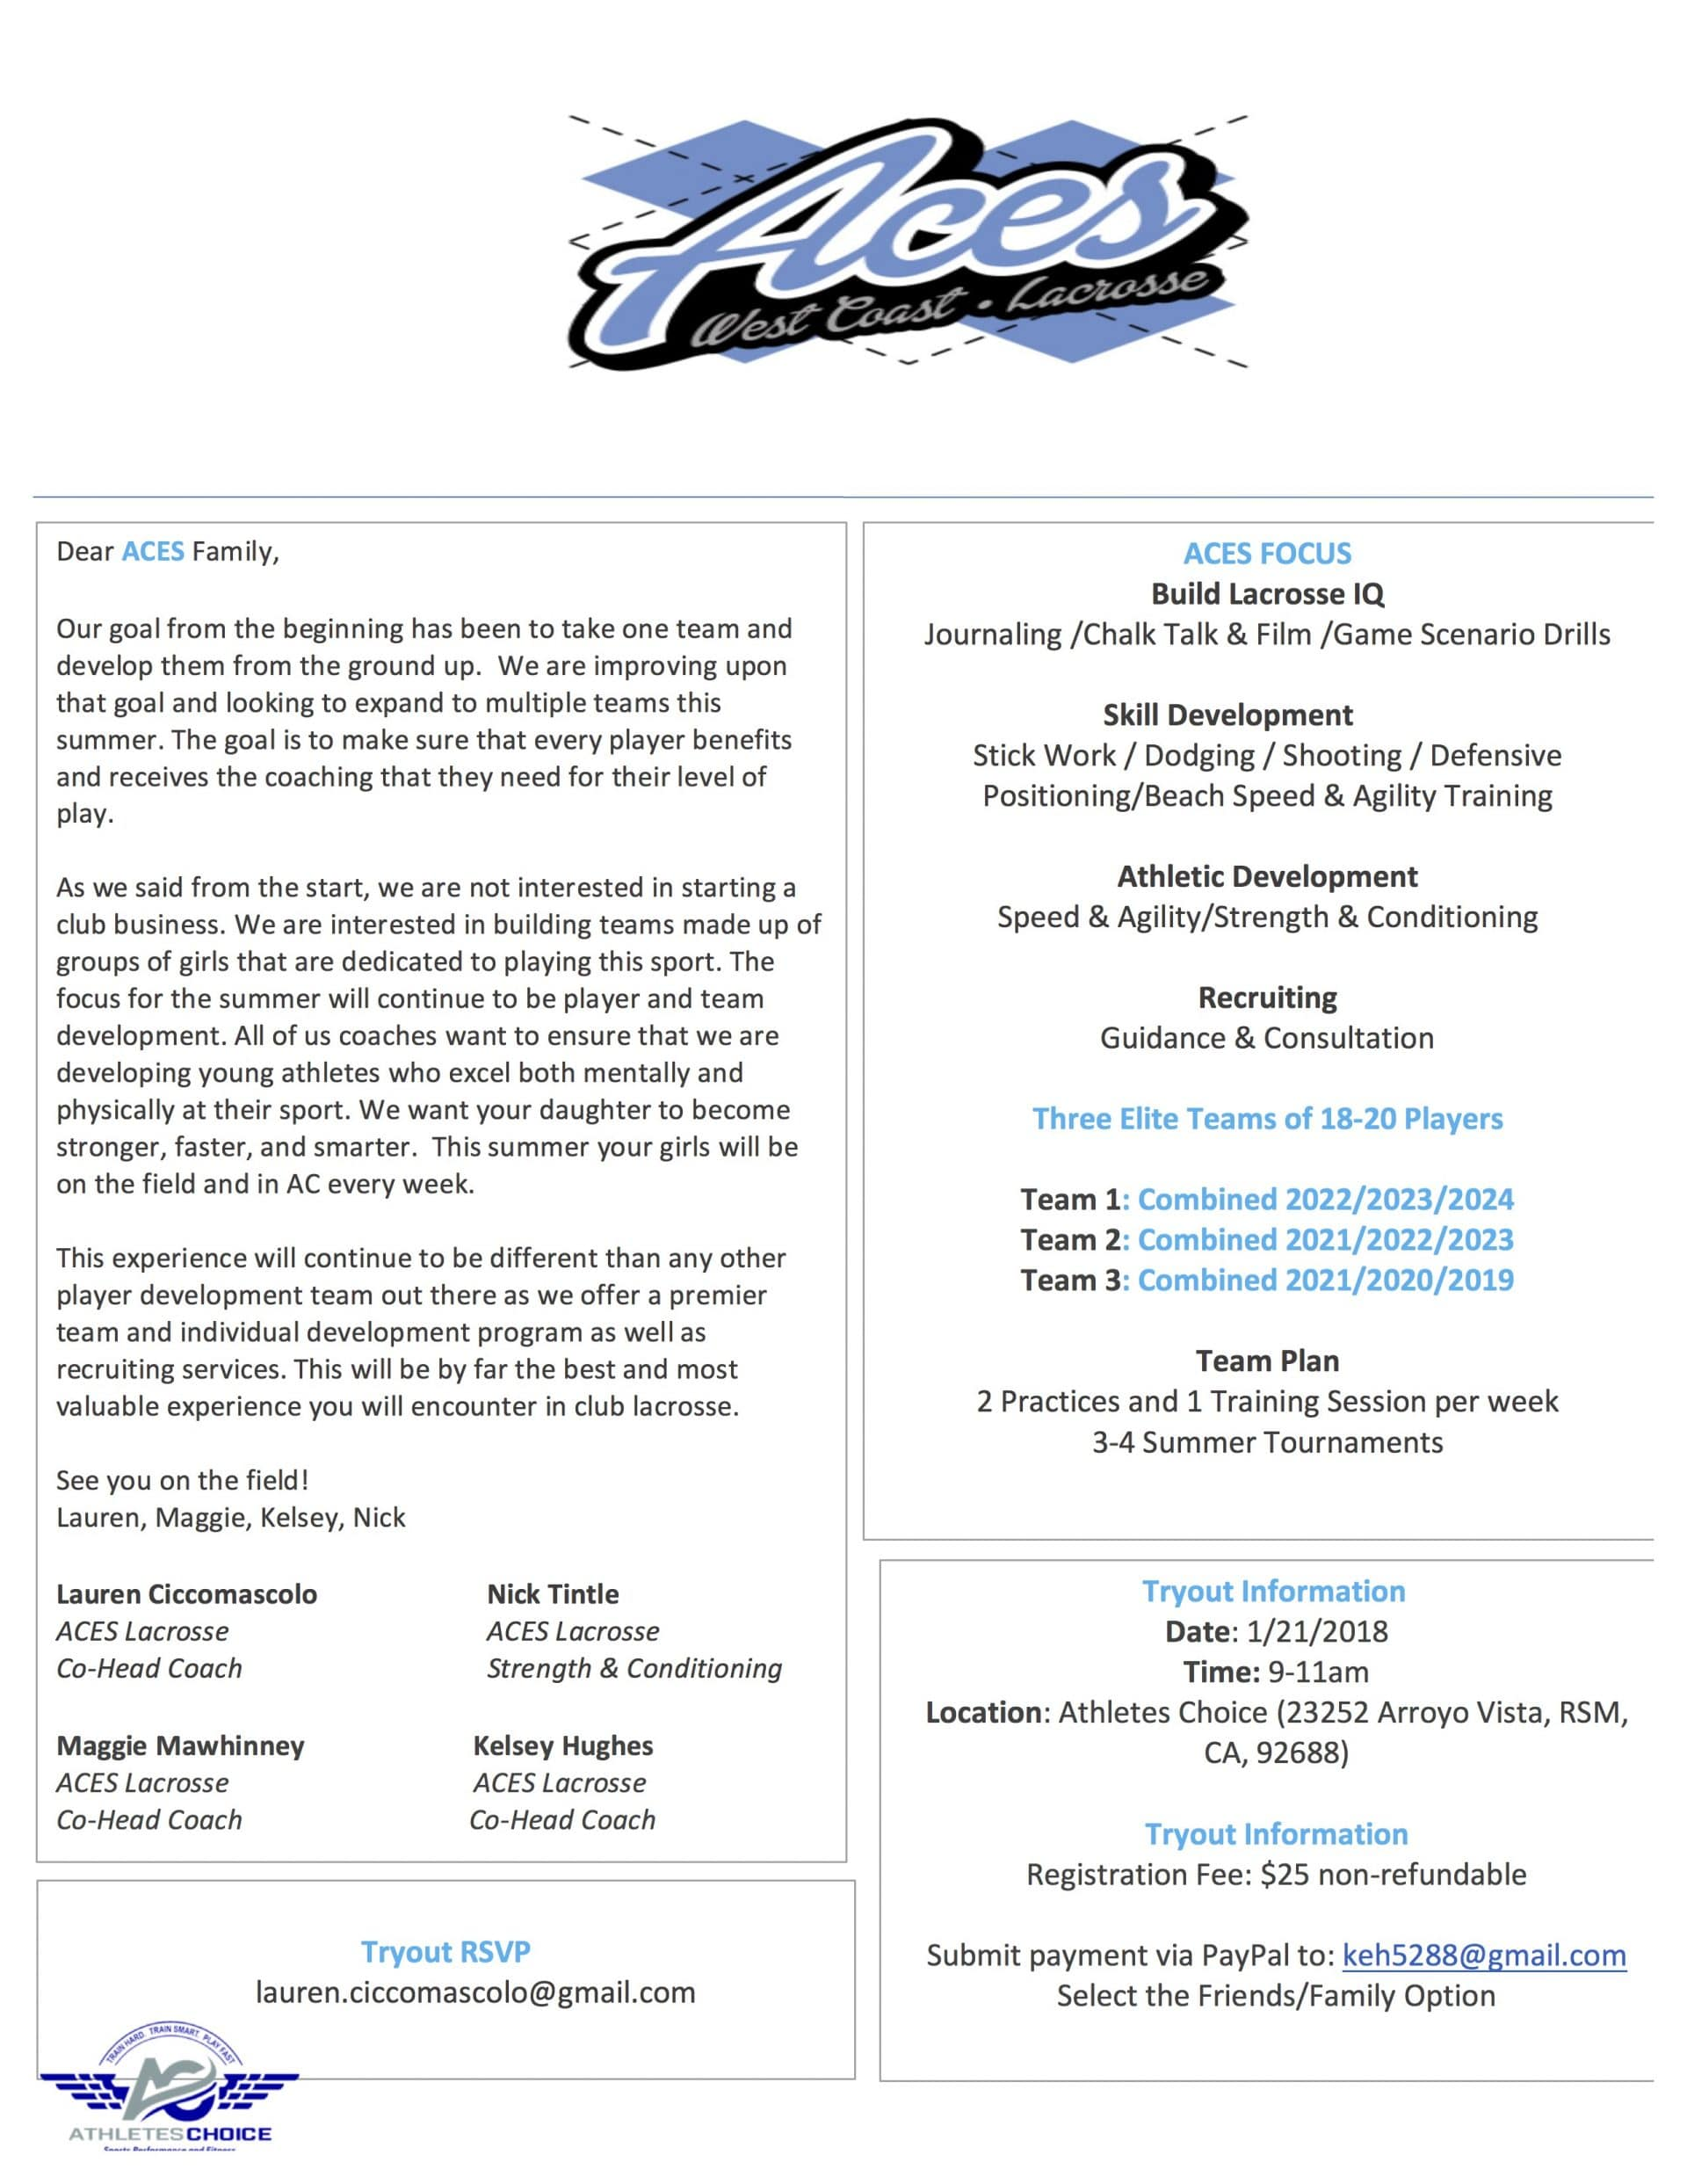 Aces Lacrosse Summer 2018 Tryouts